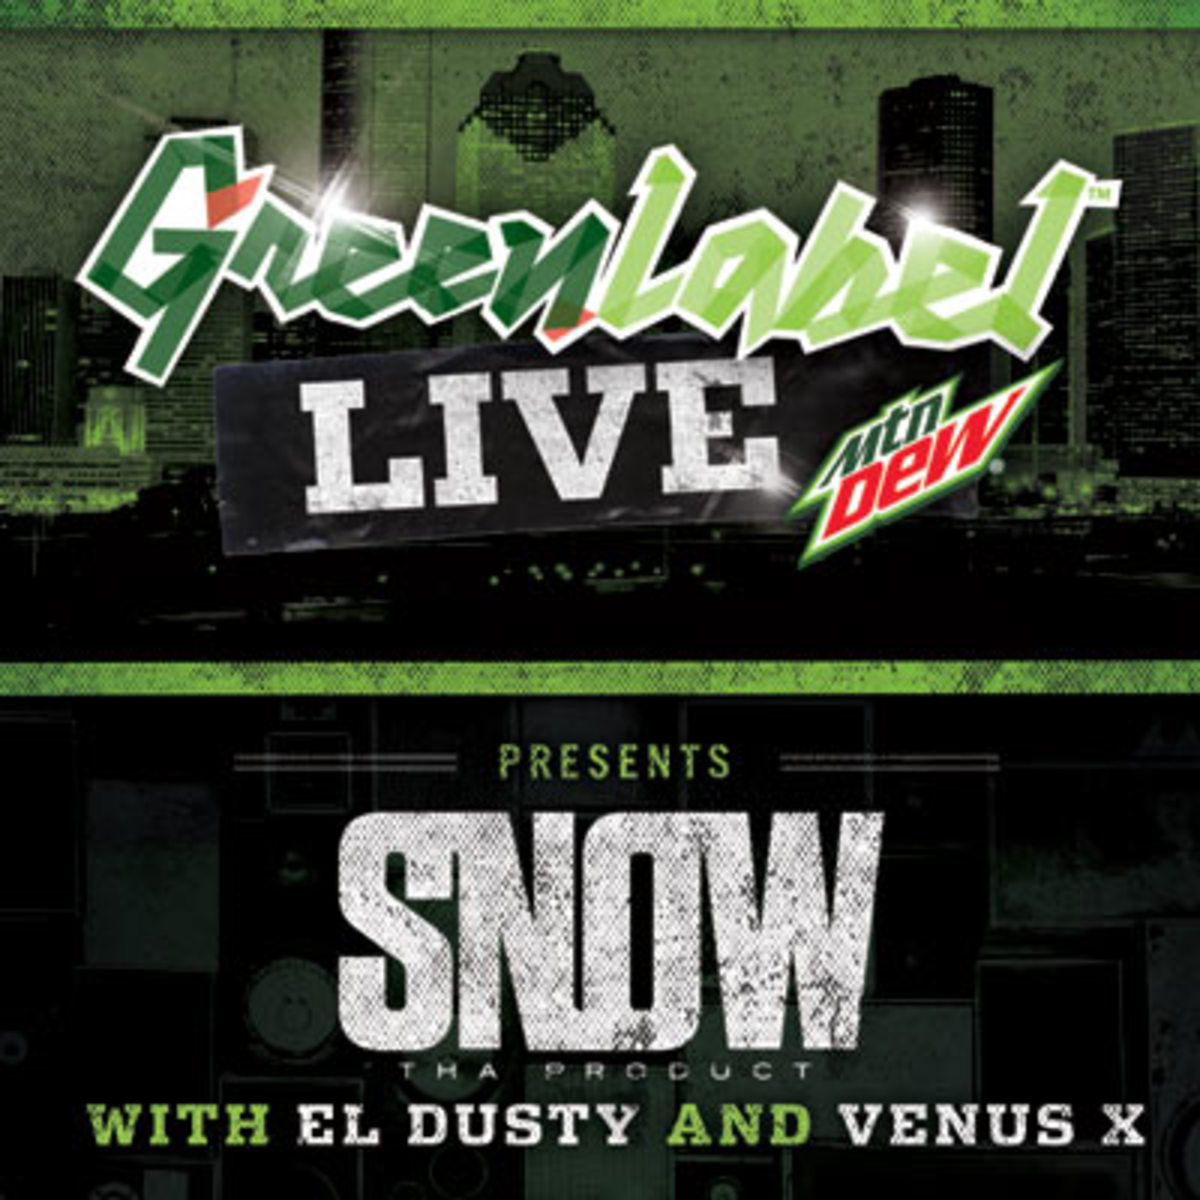 green-label-show-snow.jpg